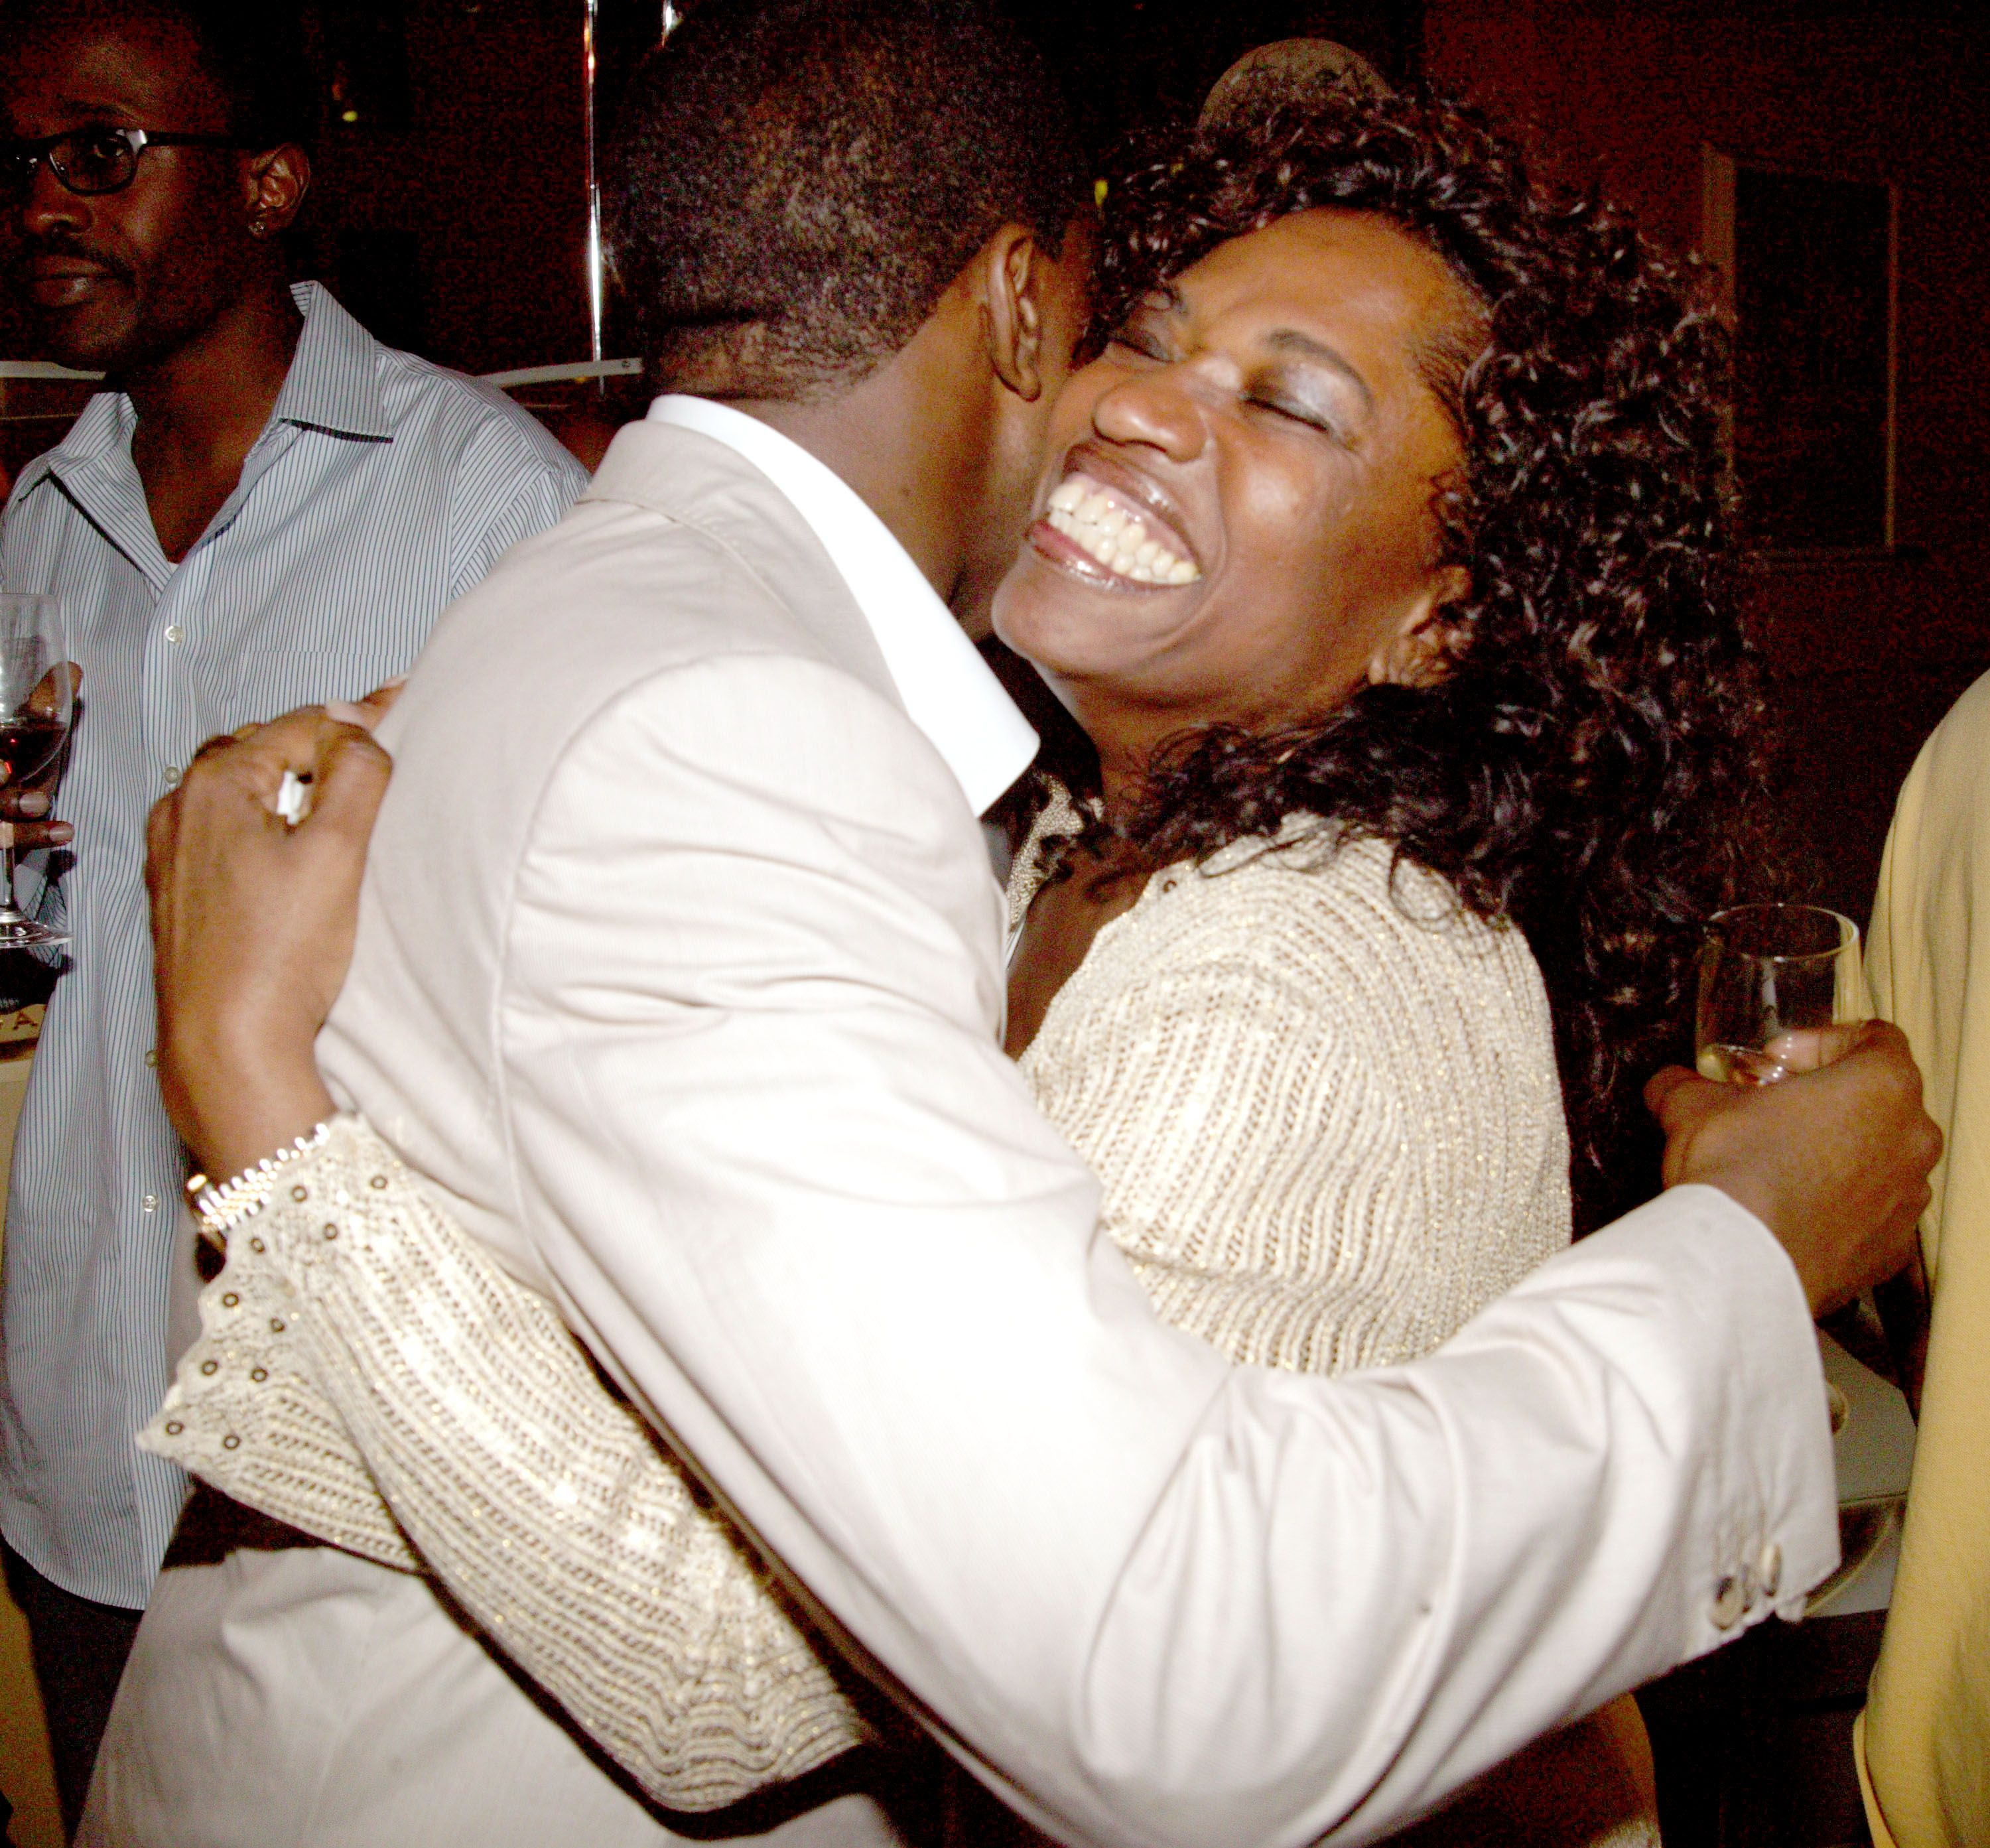 Kanye West and Donda West at his 28th birthday party in 2005 | Source: Getty Images